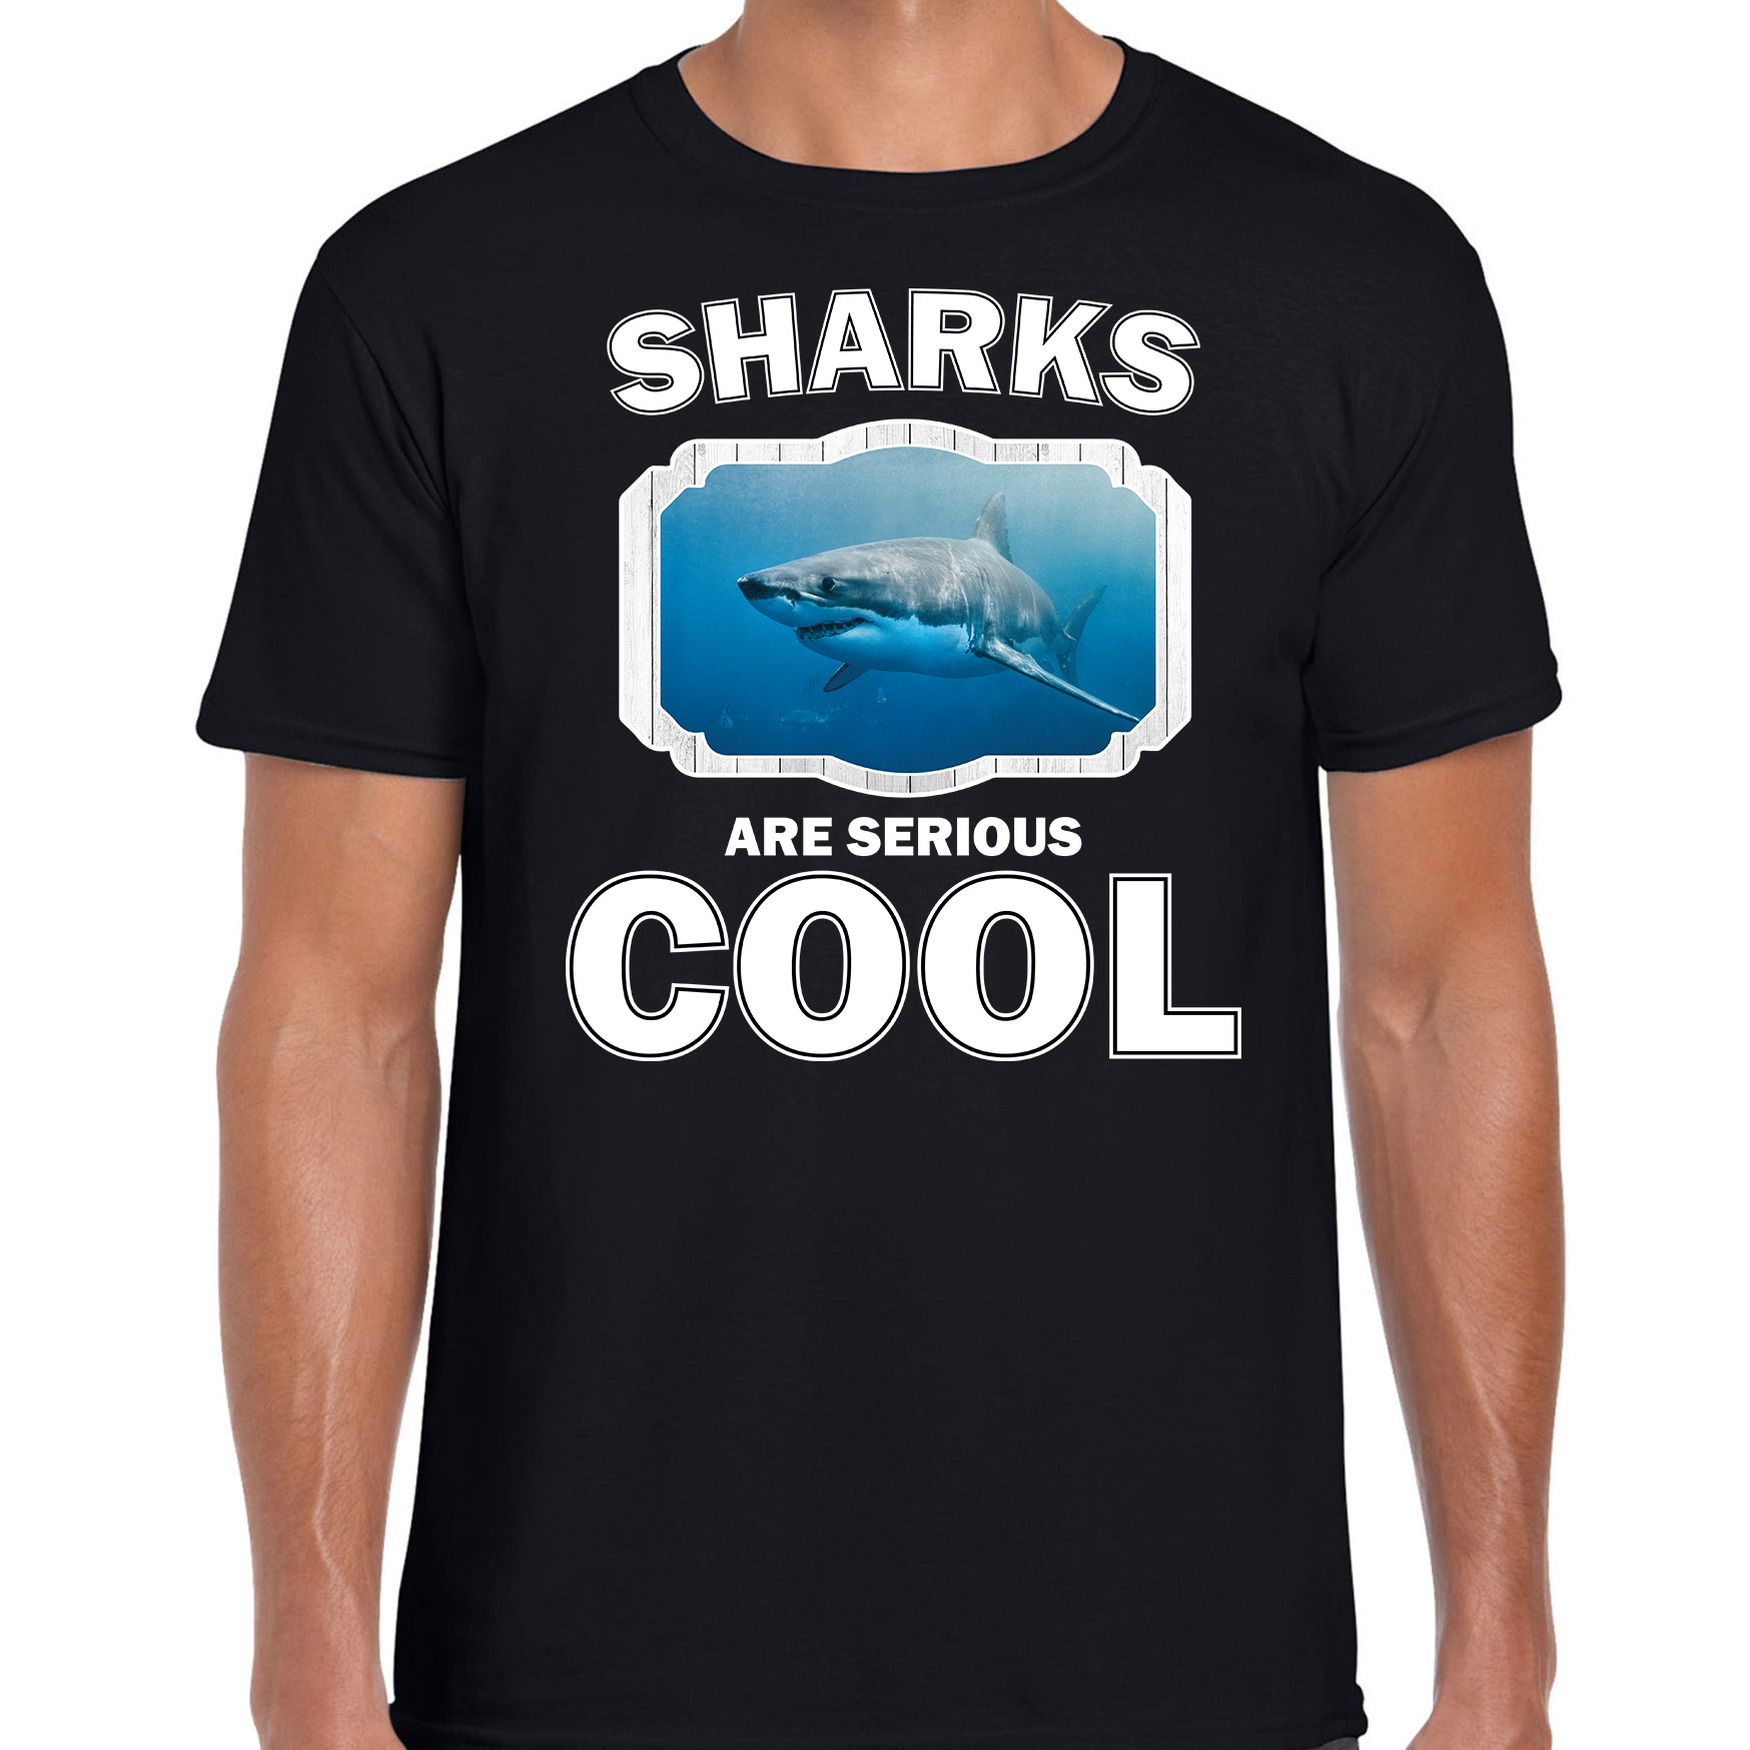 T-shirt sharks are serious cool zwart heren - haaien/ haai shirt